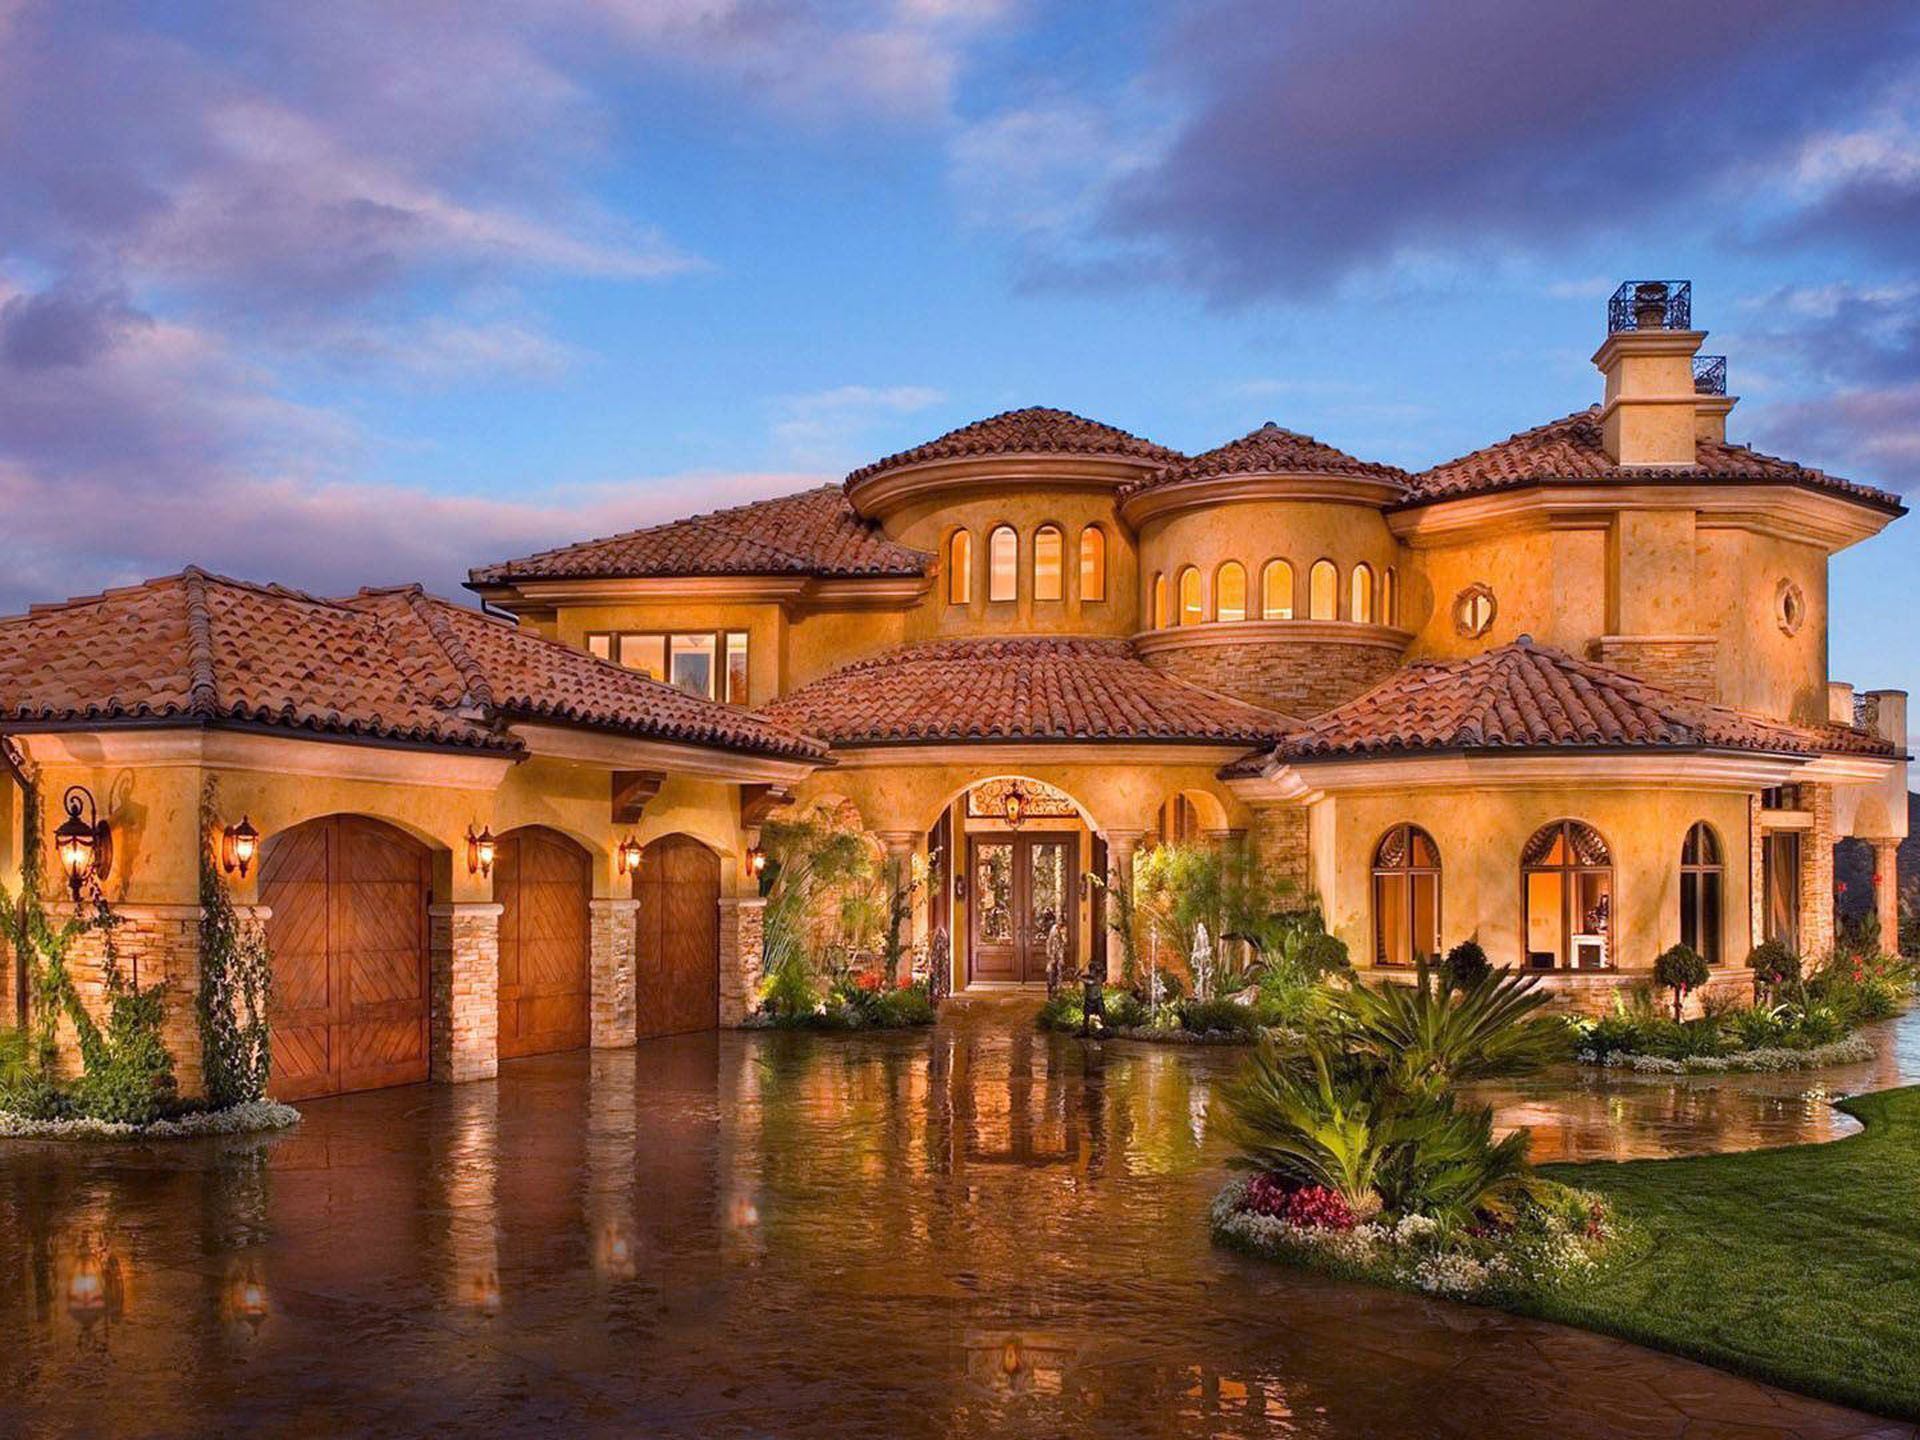 Mediterranean style home designers in az - Mediterranean Home Spanish Style Exterior Design Ideas Pictures Remodel And Decor Page 4